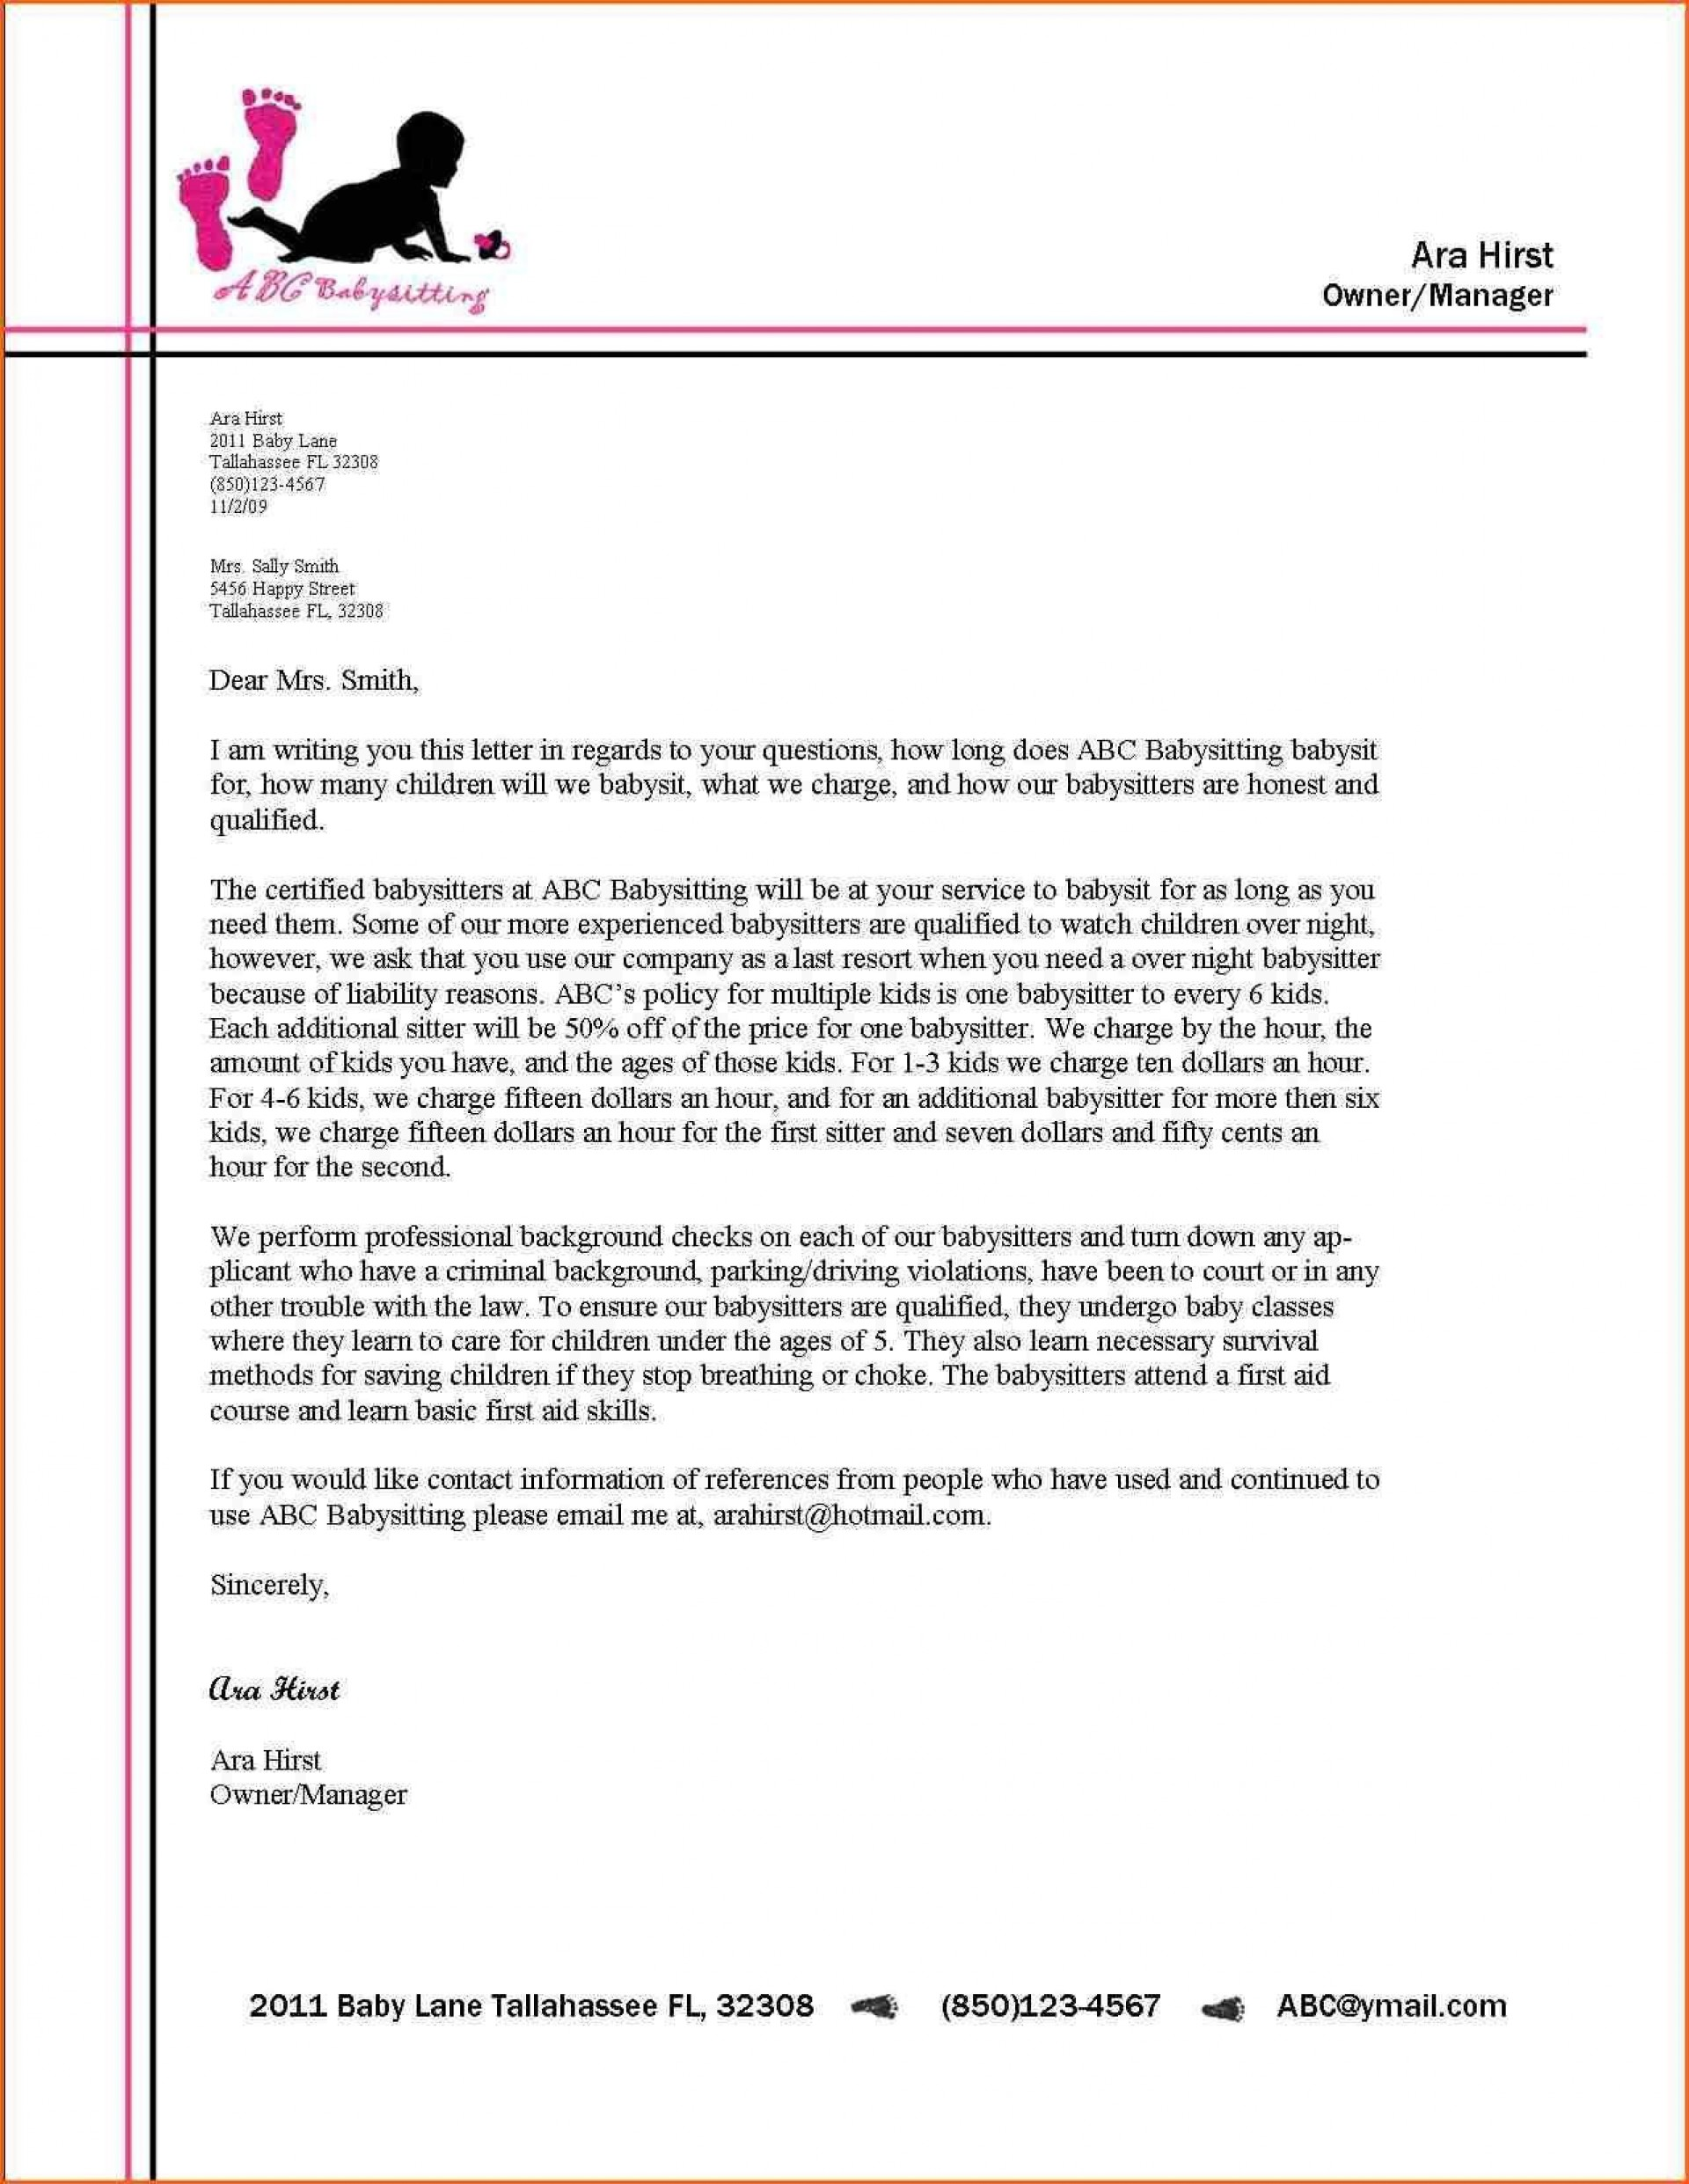 000 Excellent Sample Busines Letter Template High Definition  Of Intent Formal Free1920